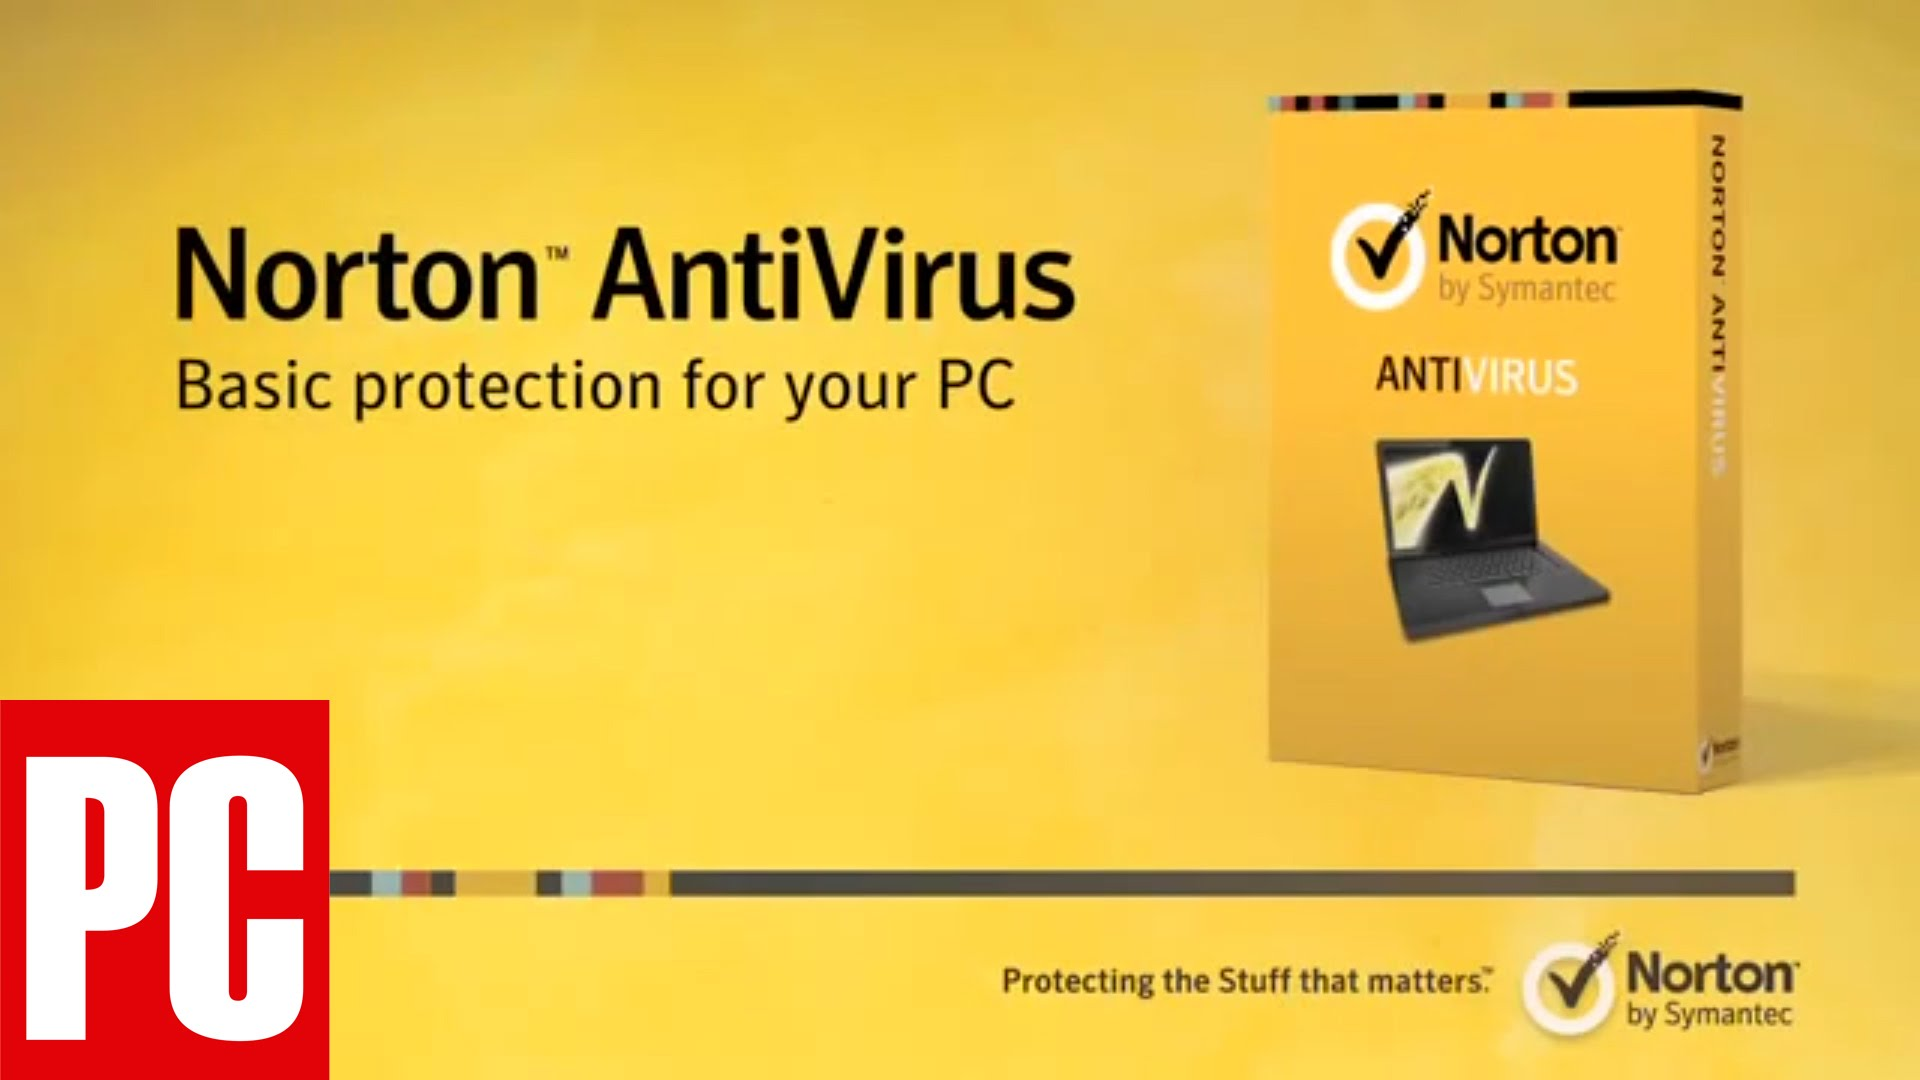 Norton security asus apps for my pc for The norton